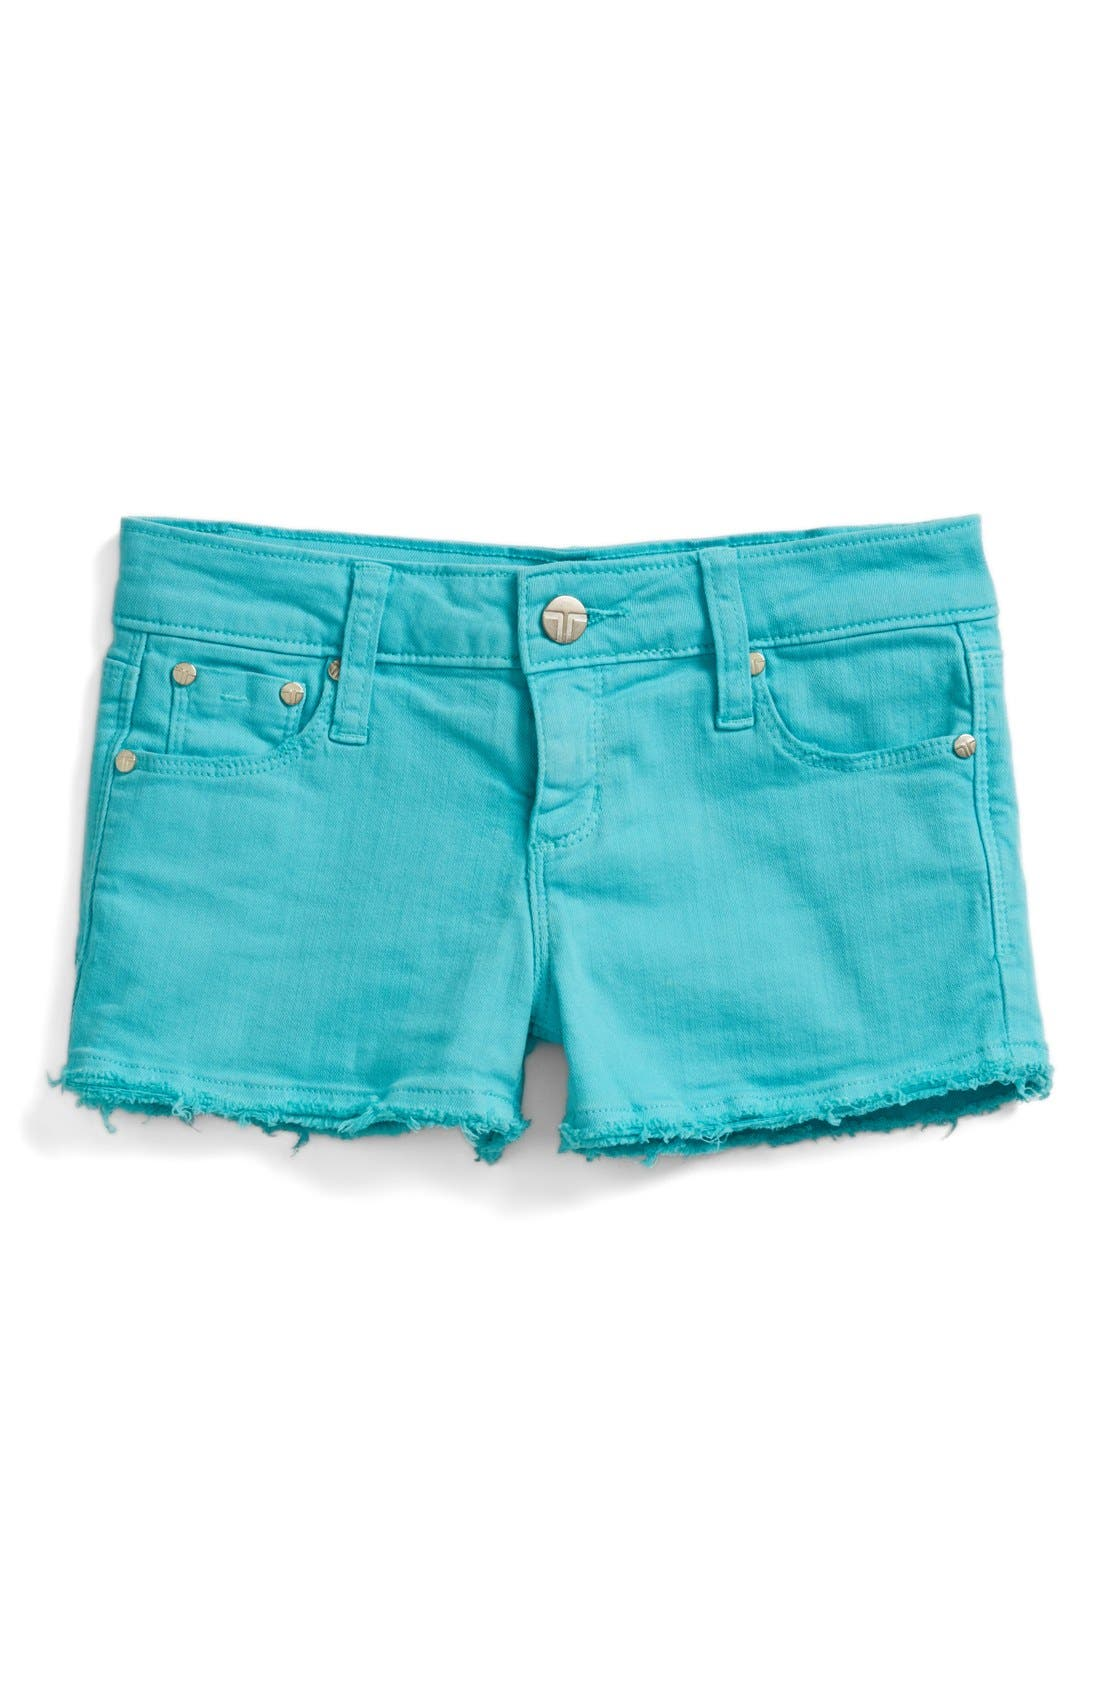 Frayed Shorts,                             Alternate thumbnail 2, color,                             400